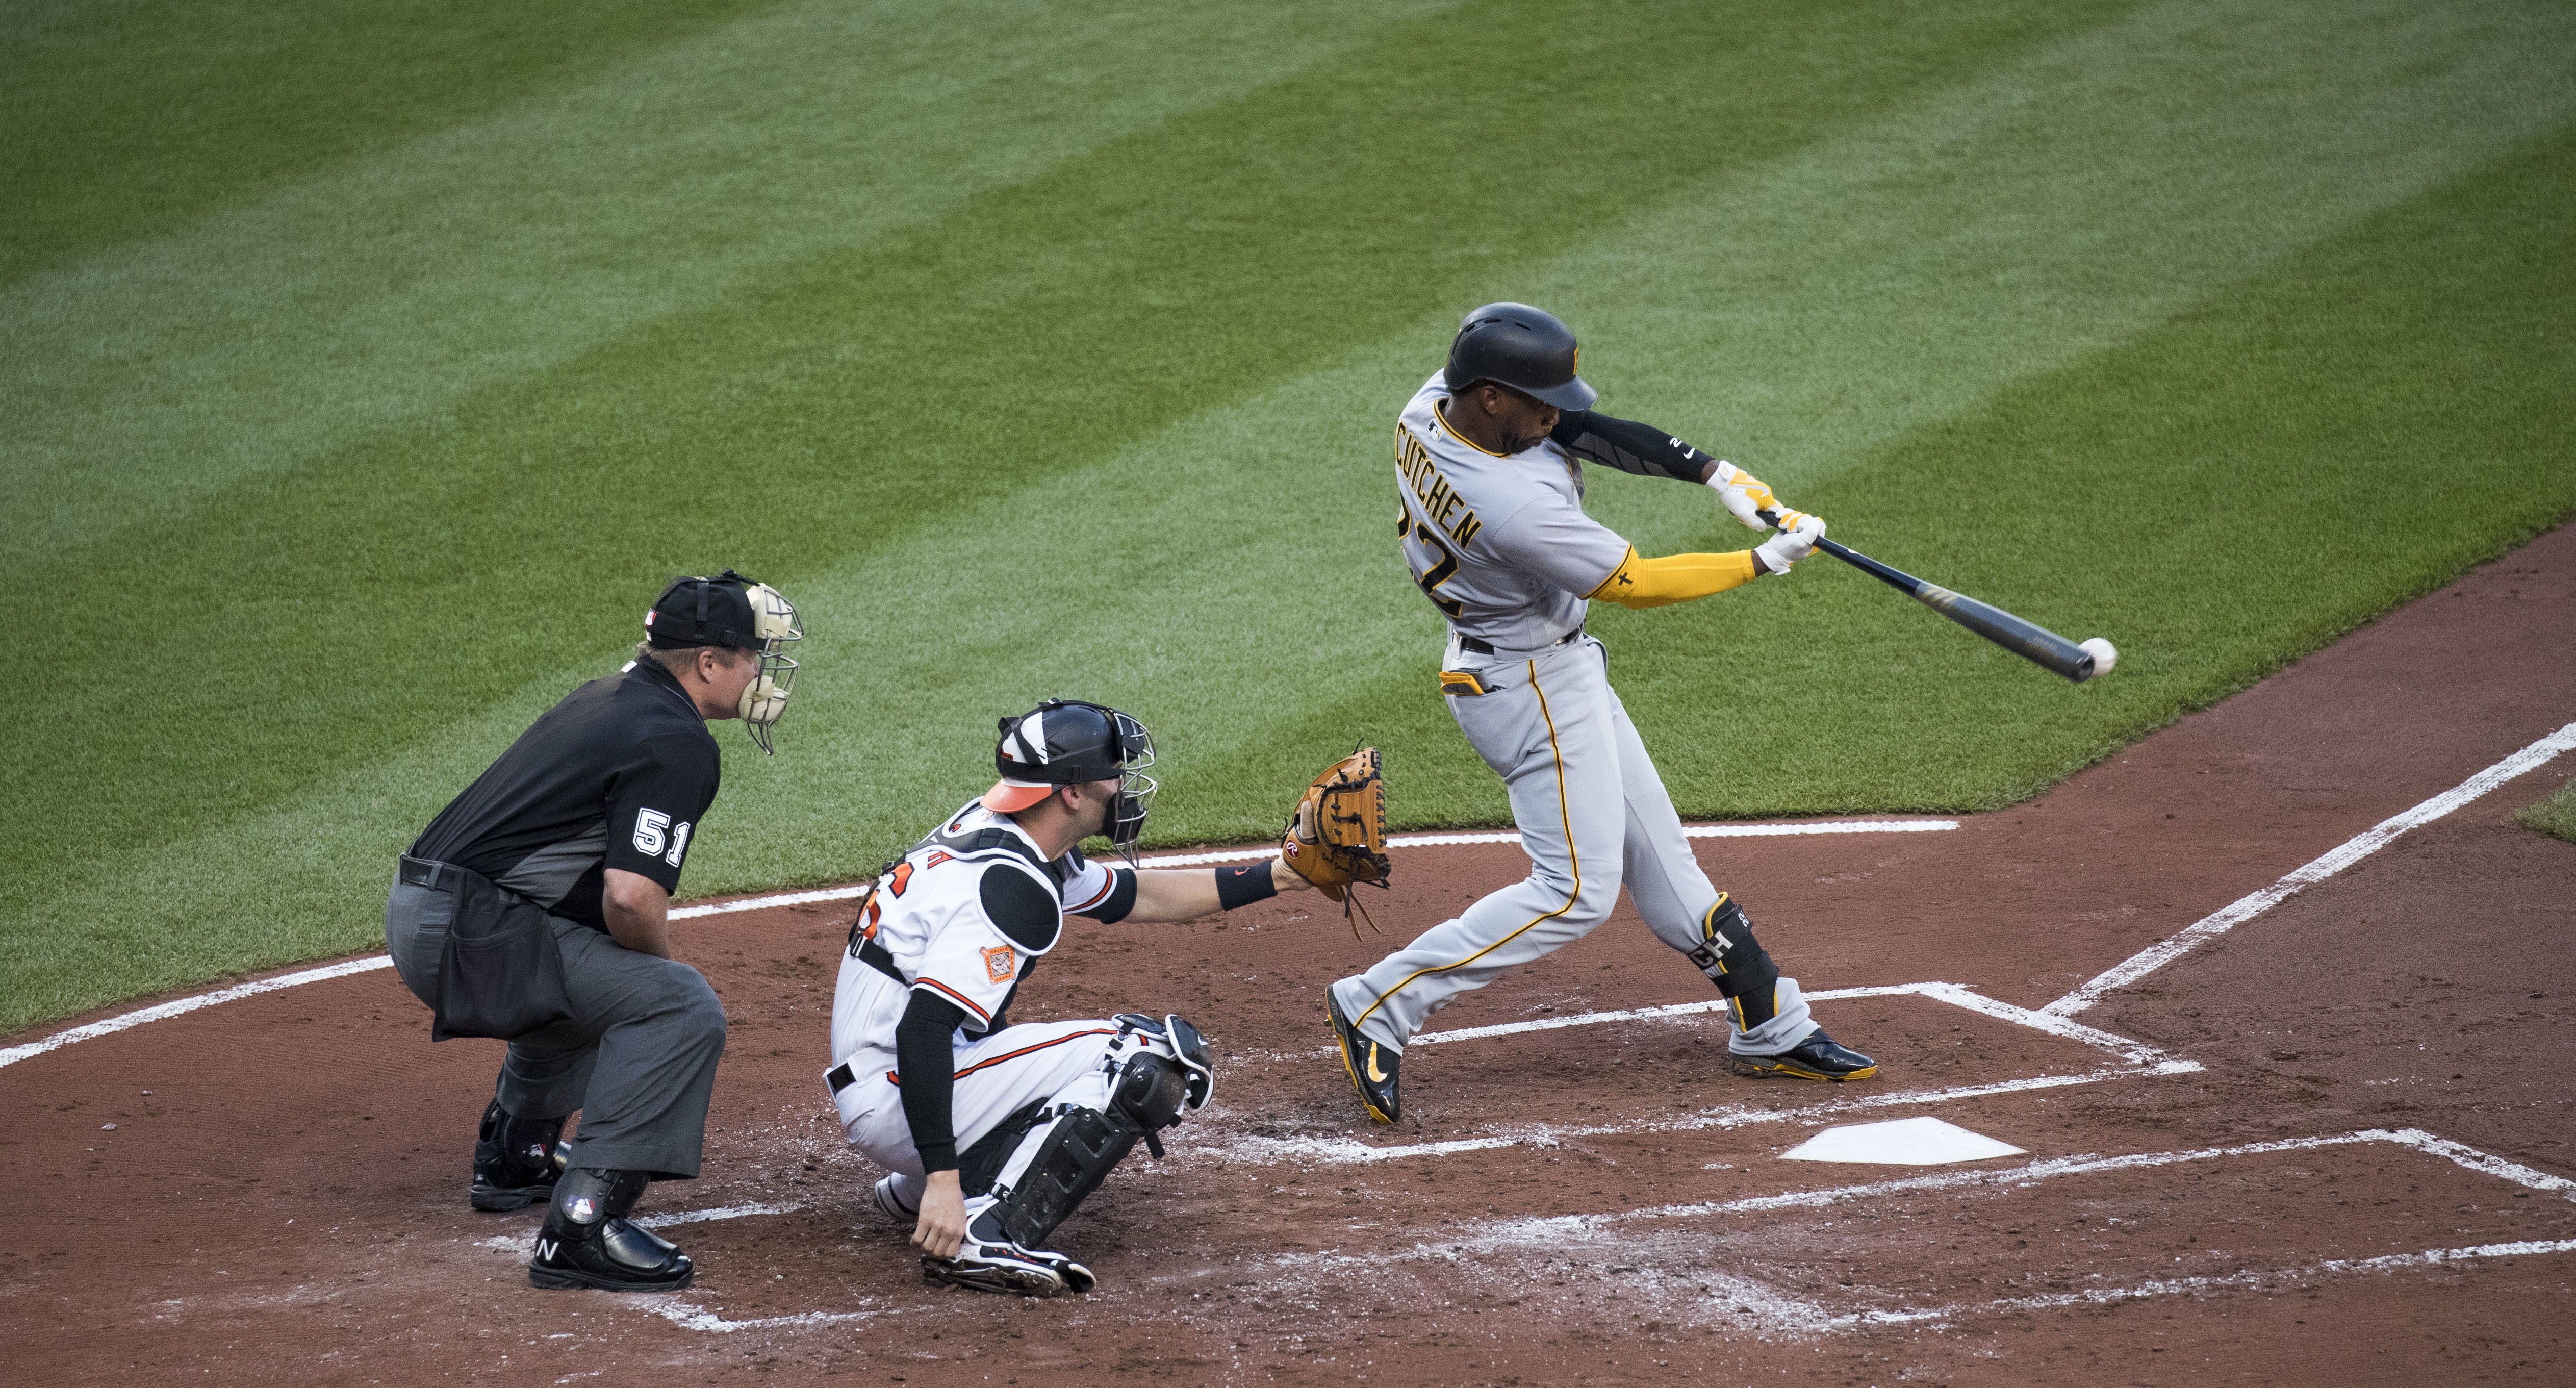 The trade of franchise player Andrew McCutchen signals the end of an era for the Pittsburgh Pirates.